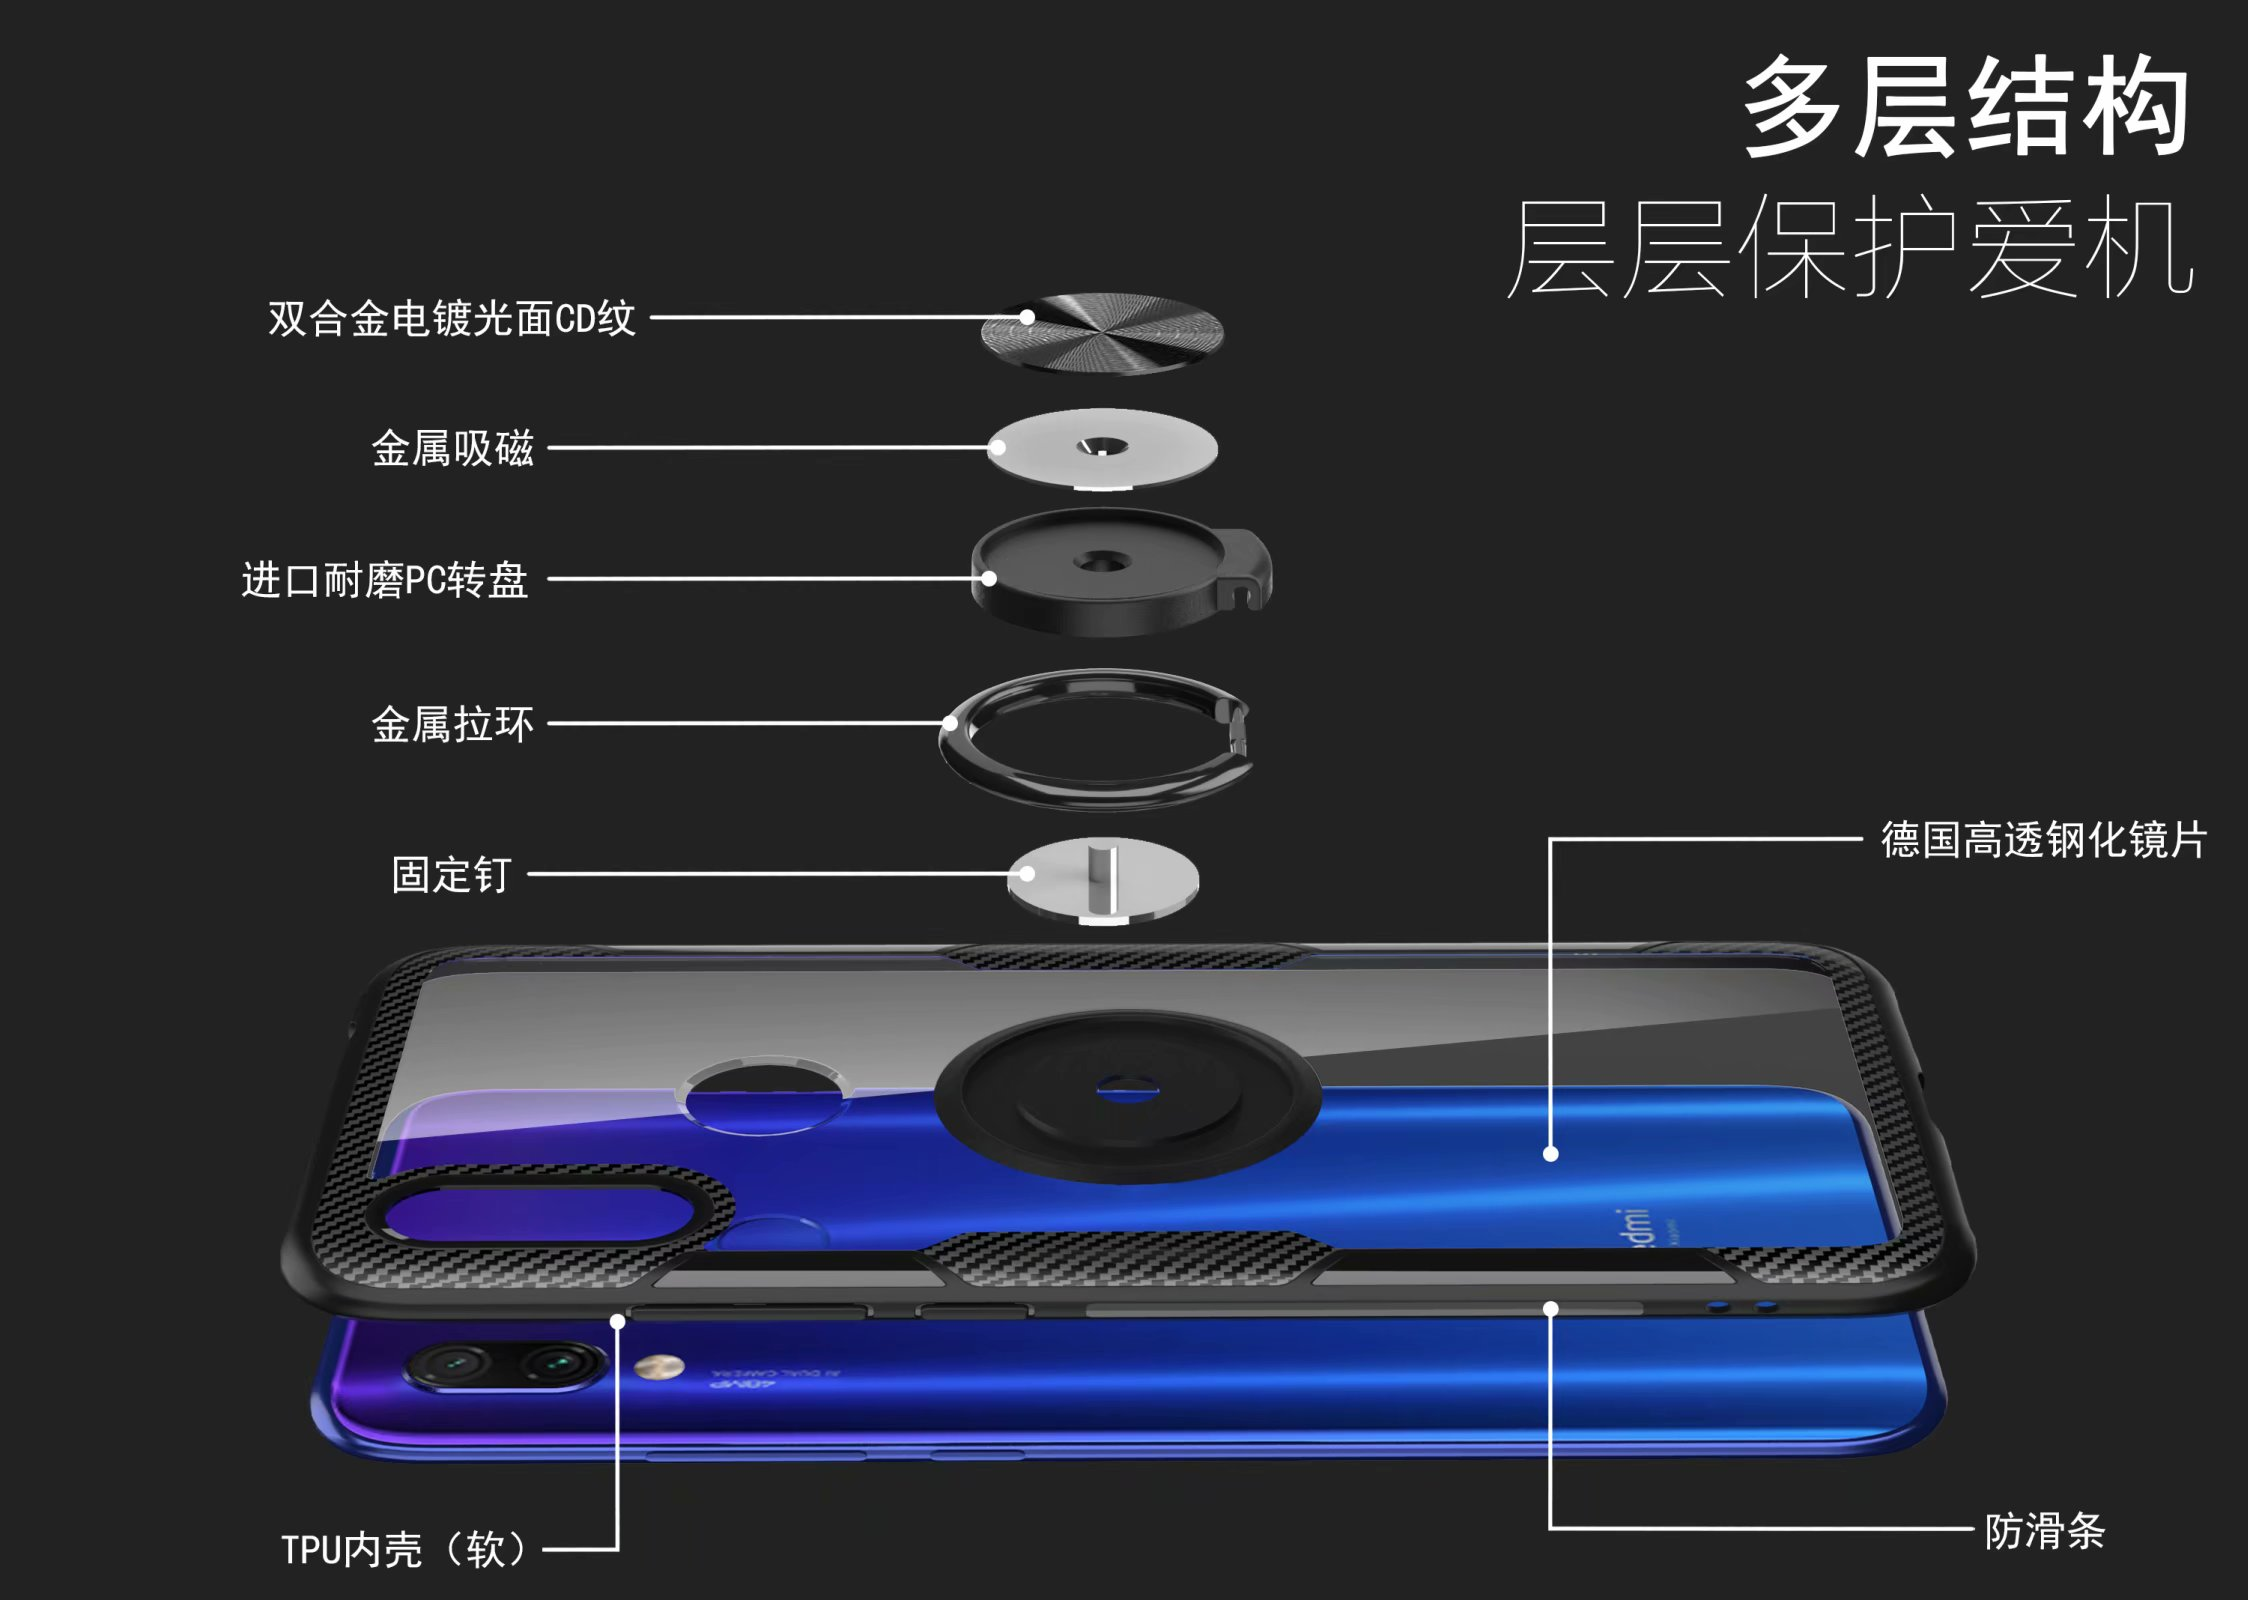 HTB1J45HUIfpK1RjSZFOq6y6nFXaO For Xiaomi Redmi Note 7 Pro Case With Ring Stand Magnet Transparent shockproof Protective Back Cover case for xiaomi redmi 7